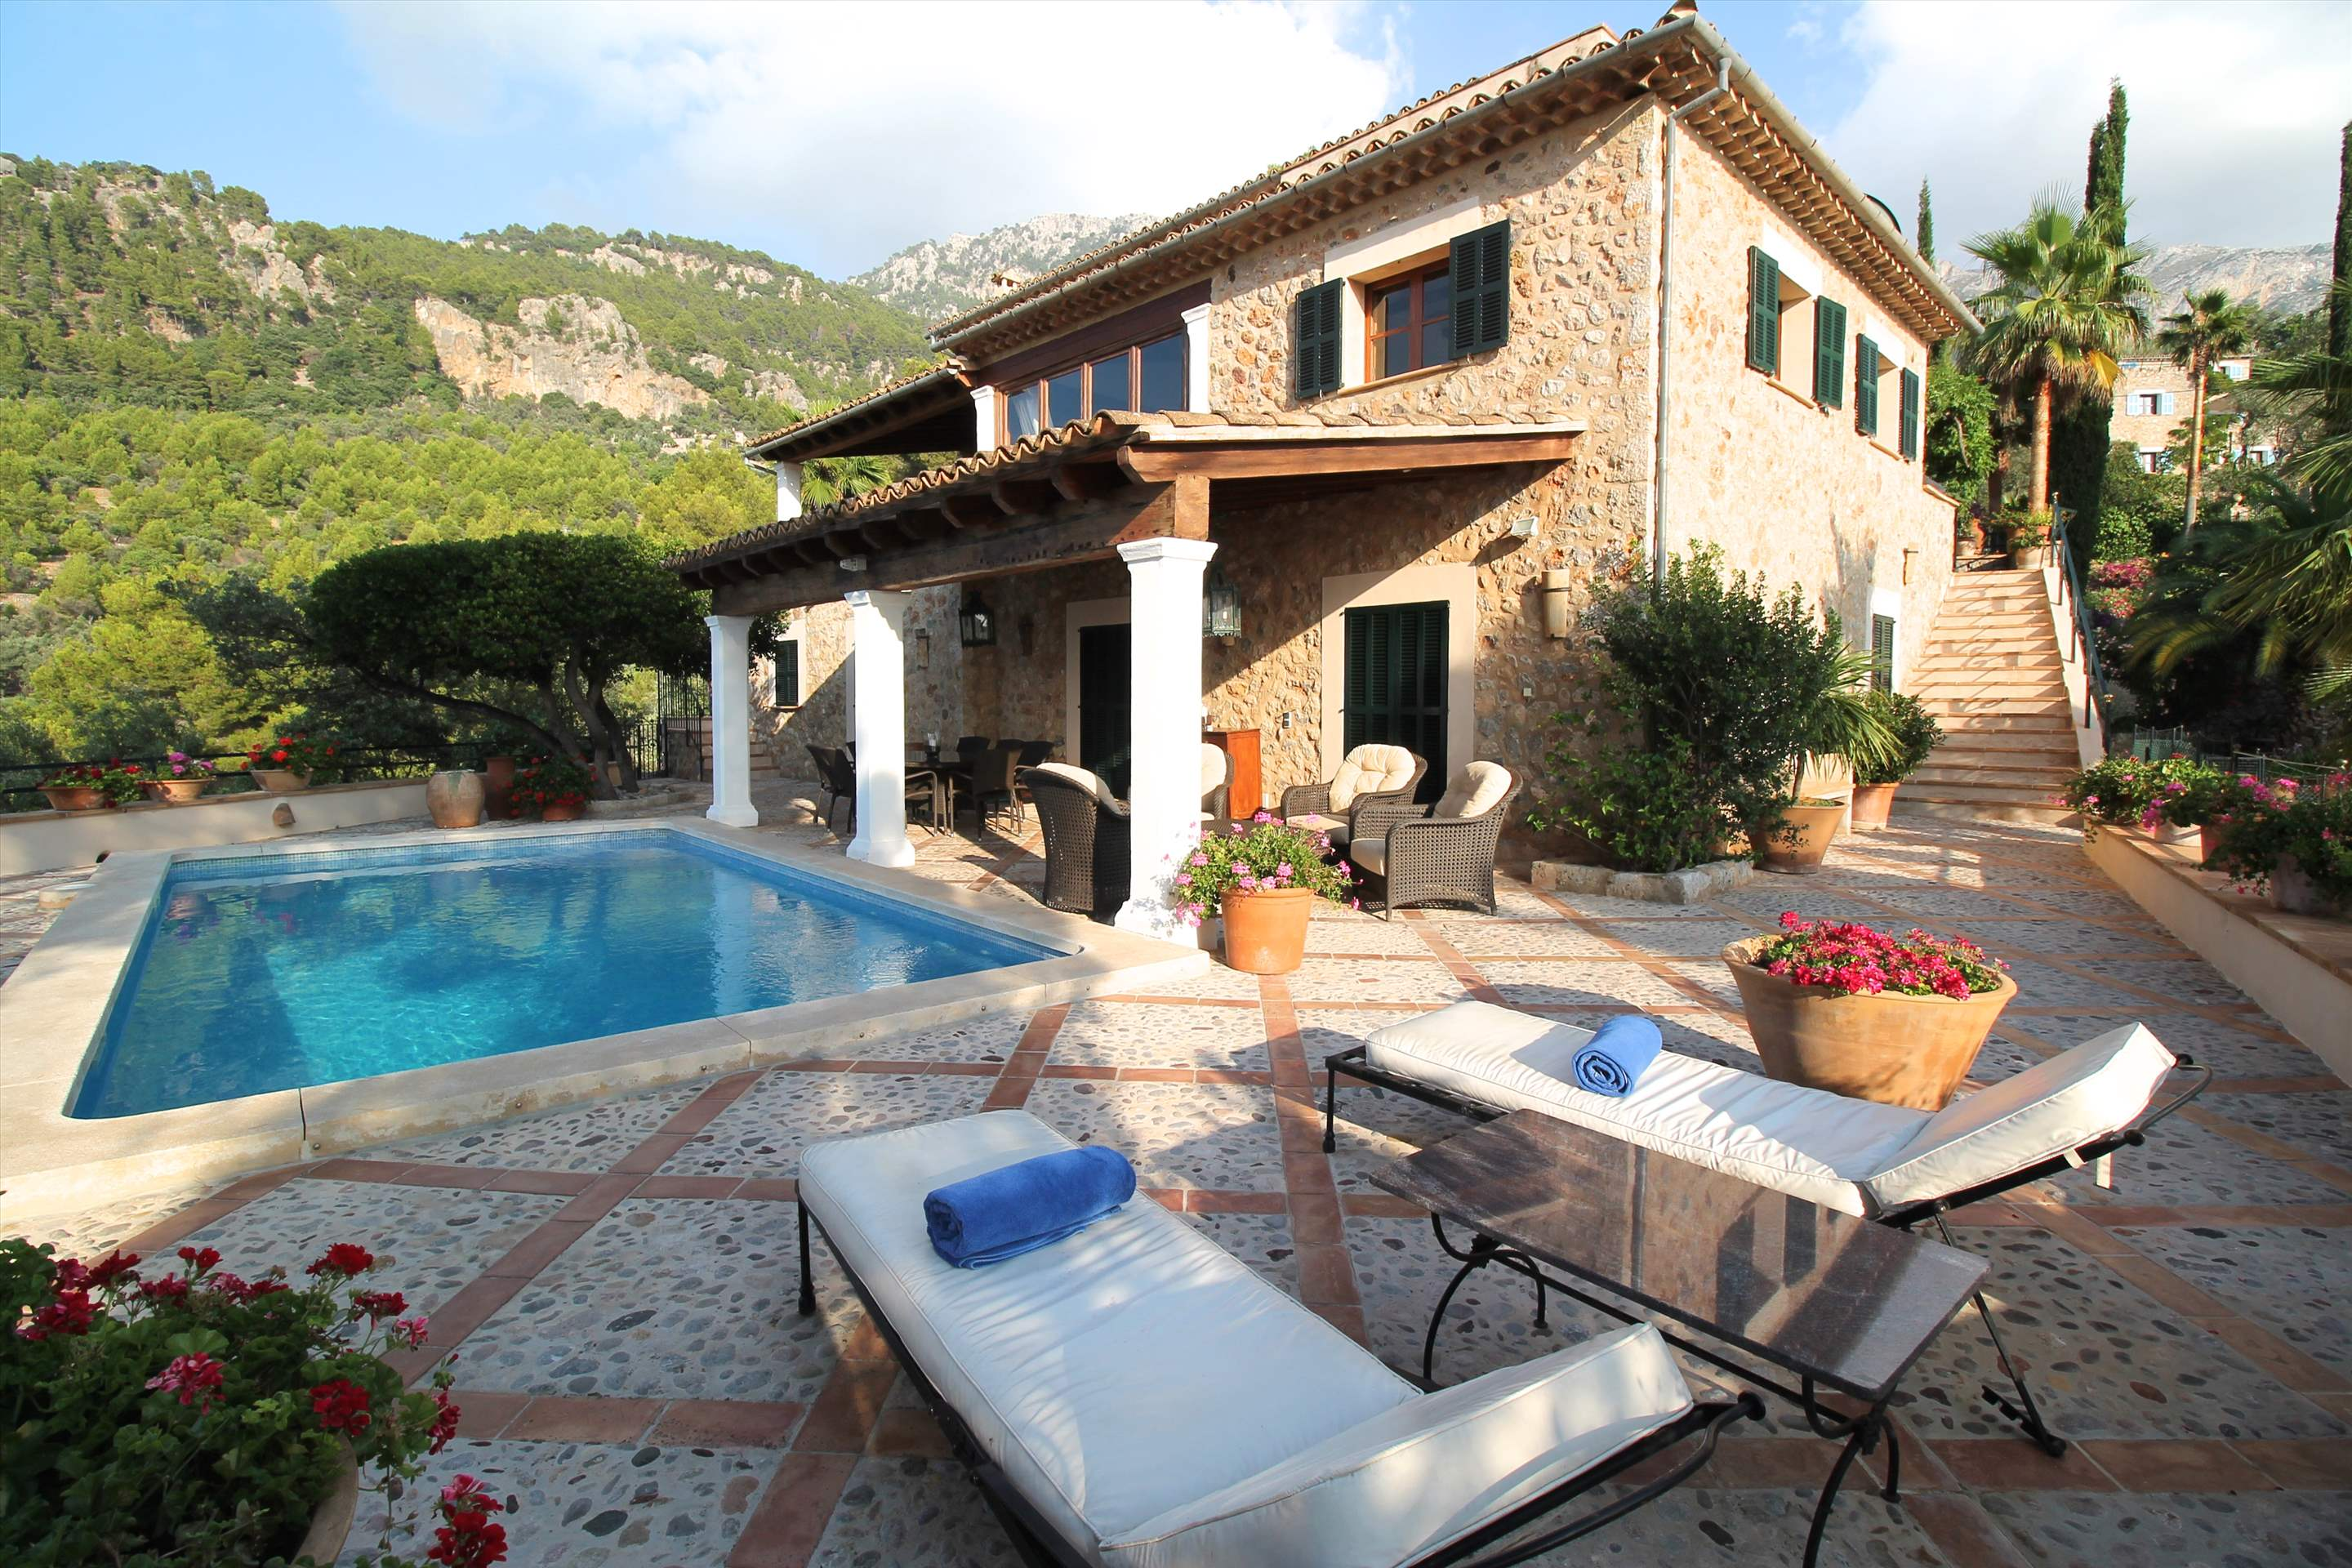 Can Winando, 5 Bedroom Rental, 5 bedroom villa in Soller & Deia, Majorca